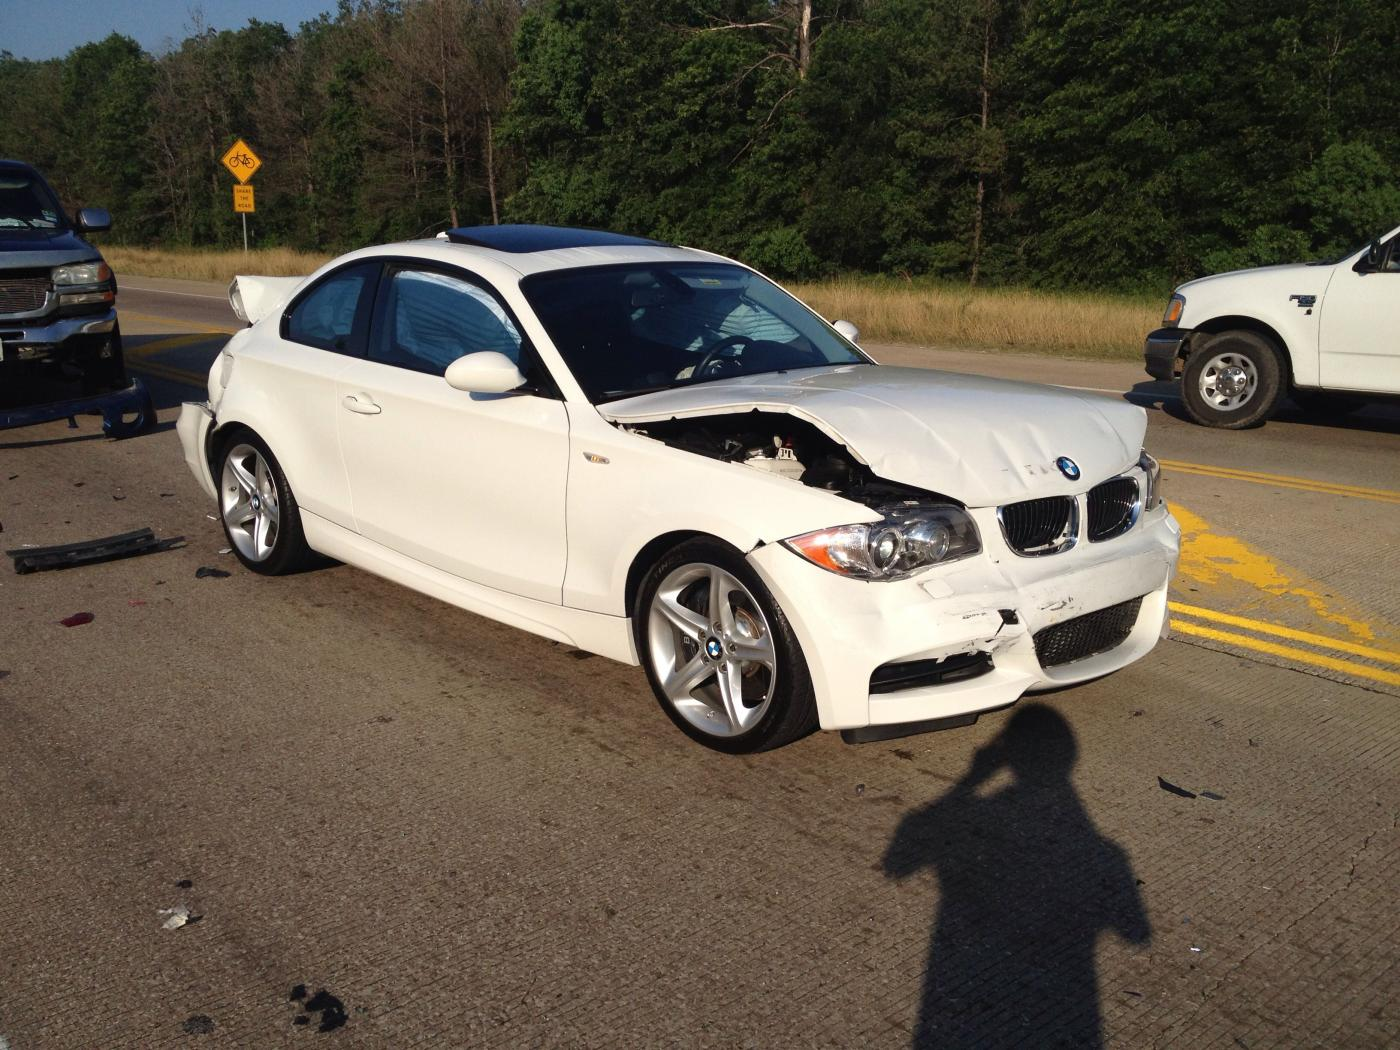 White Bmw Car Accident